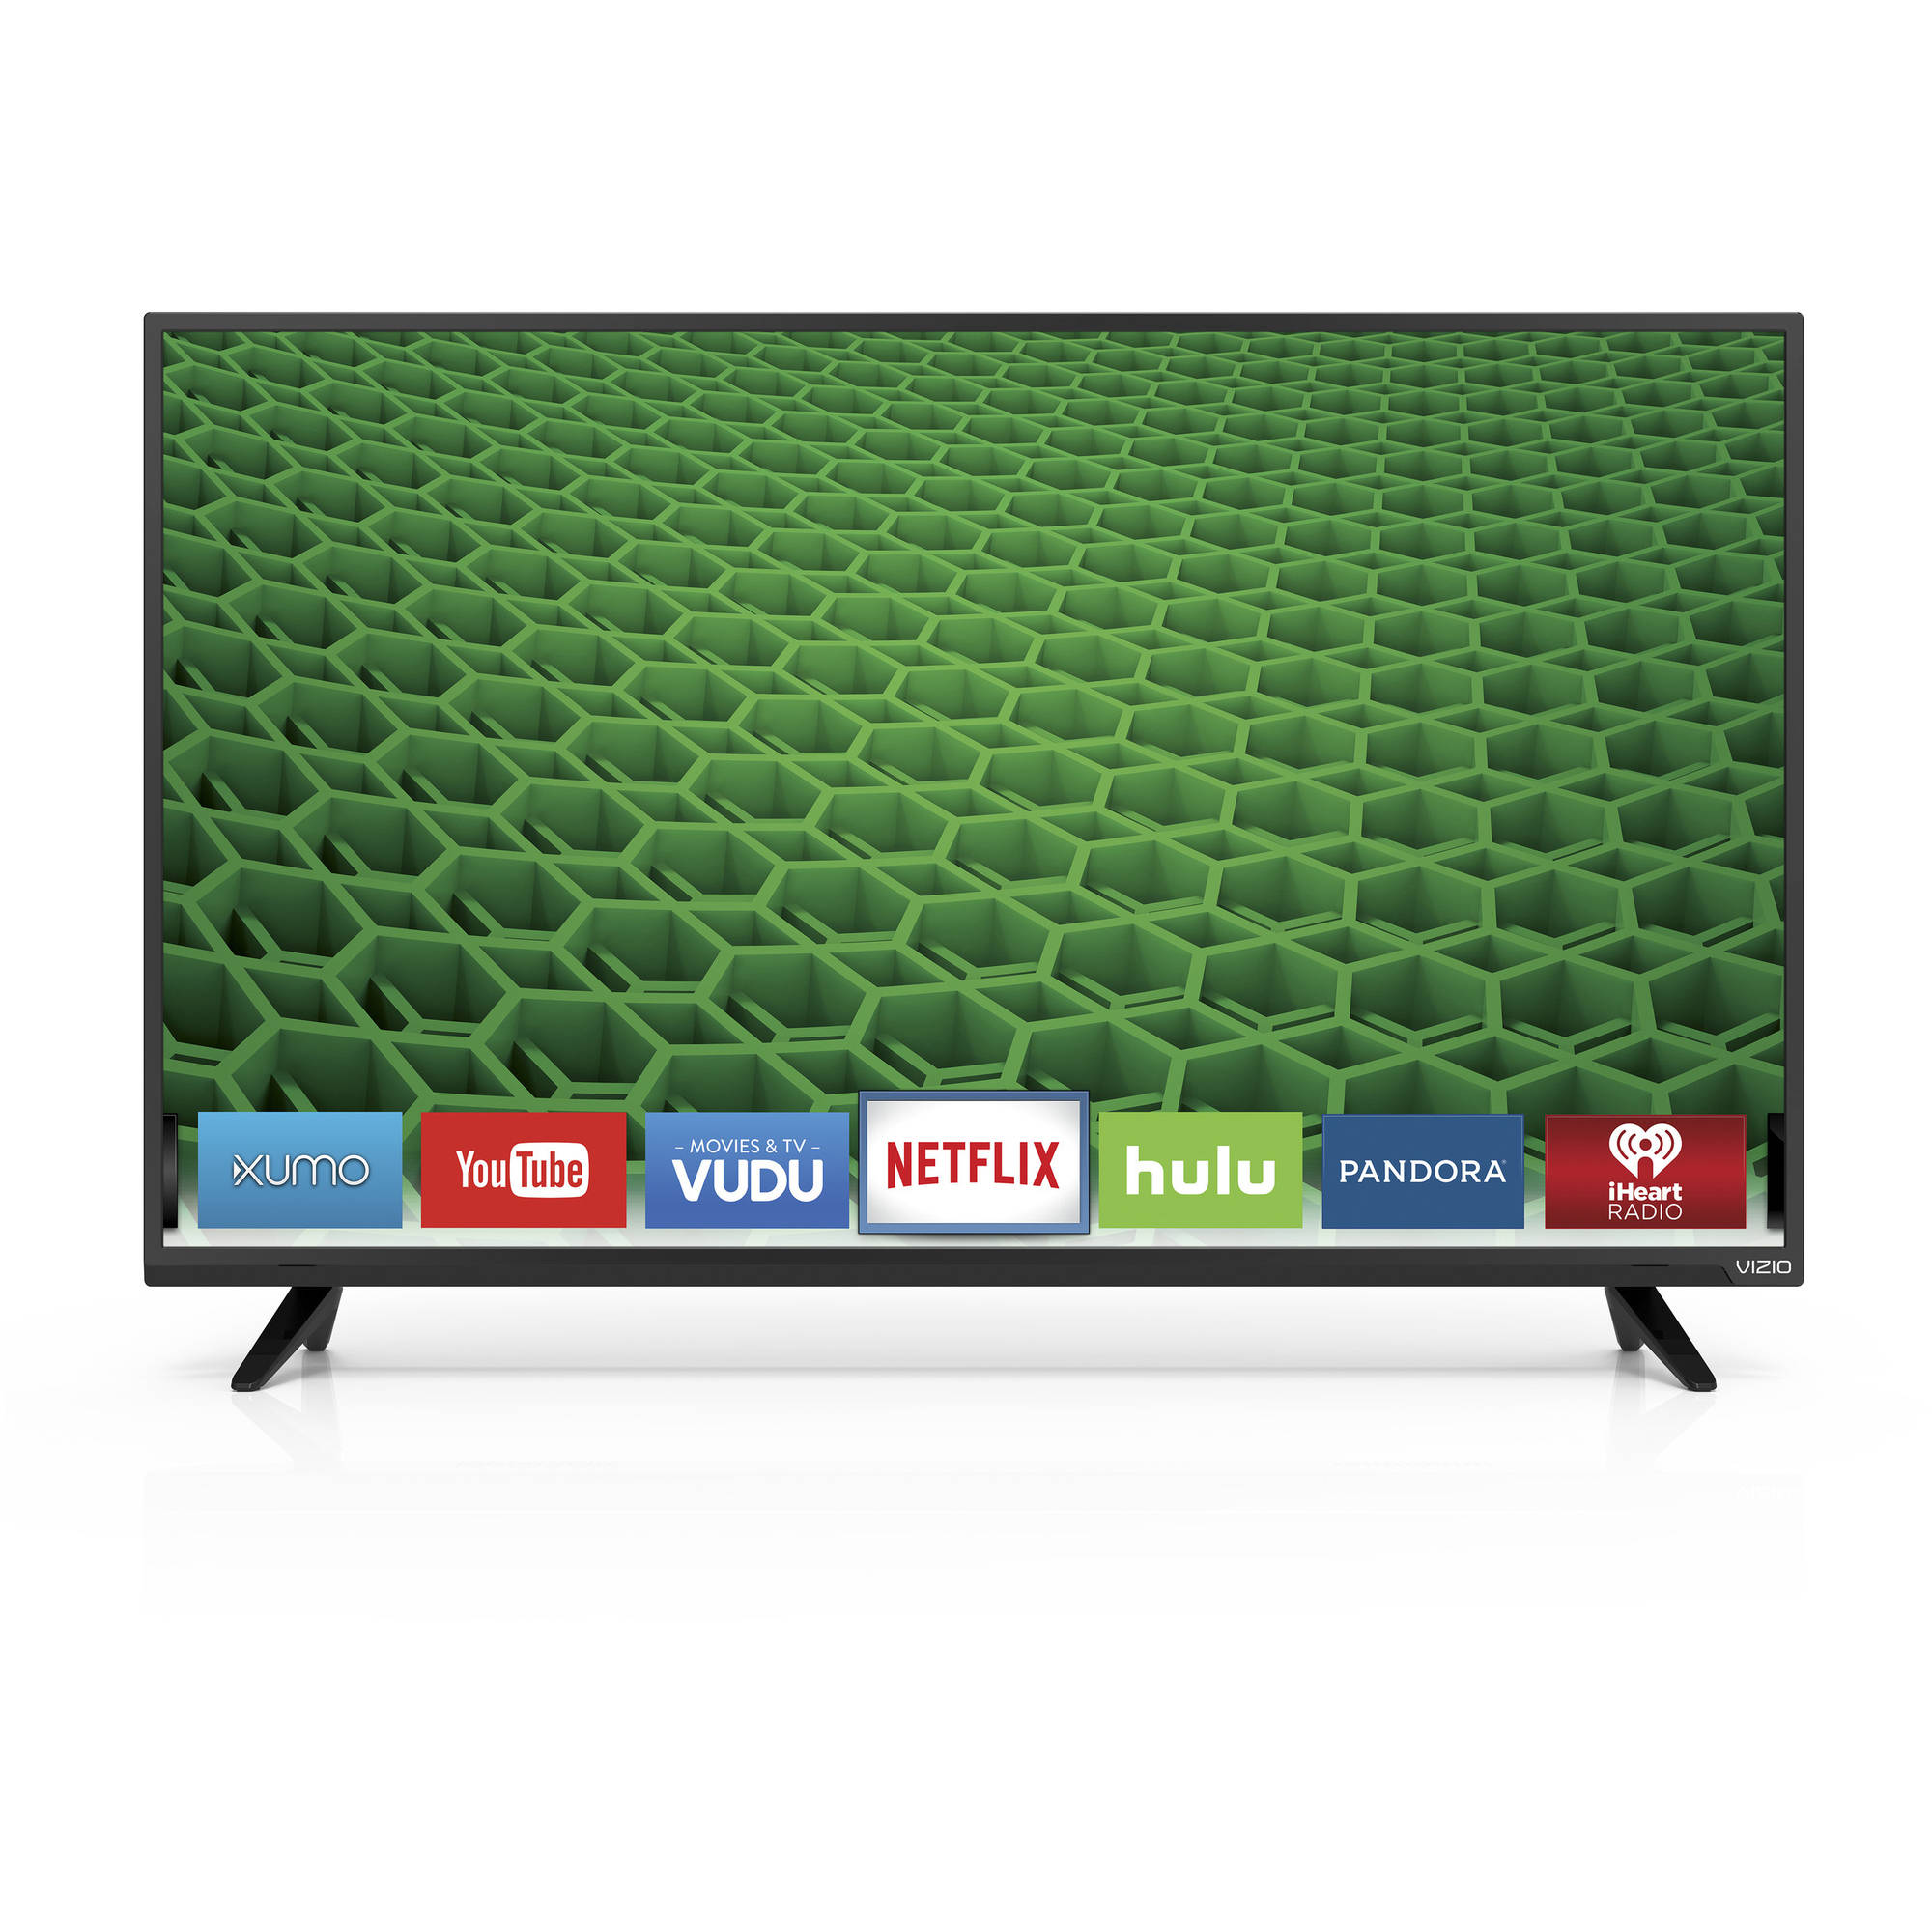 "VIZIO 48"" Class FHD (1080P) Smart LED TV (D48f-E0)"